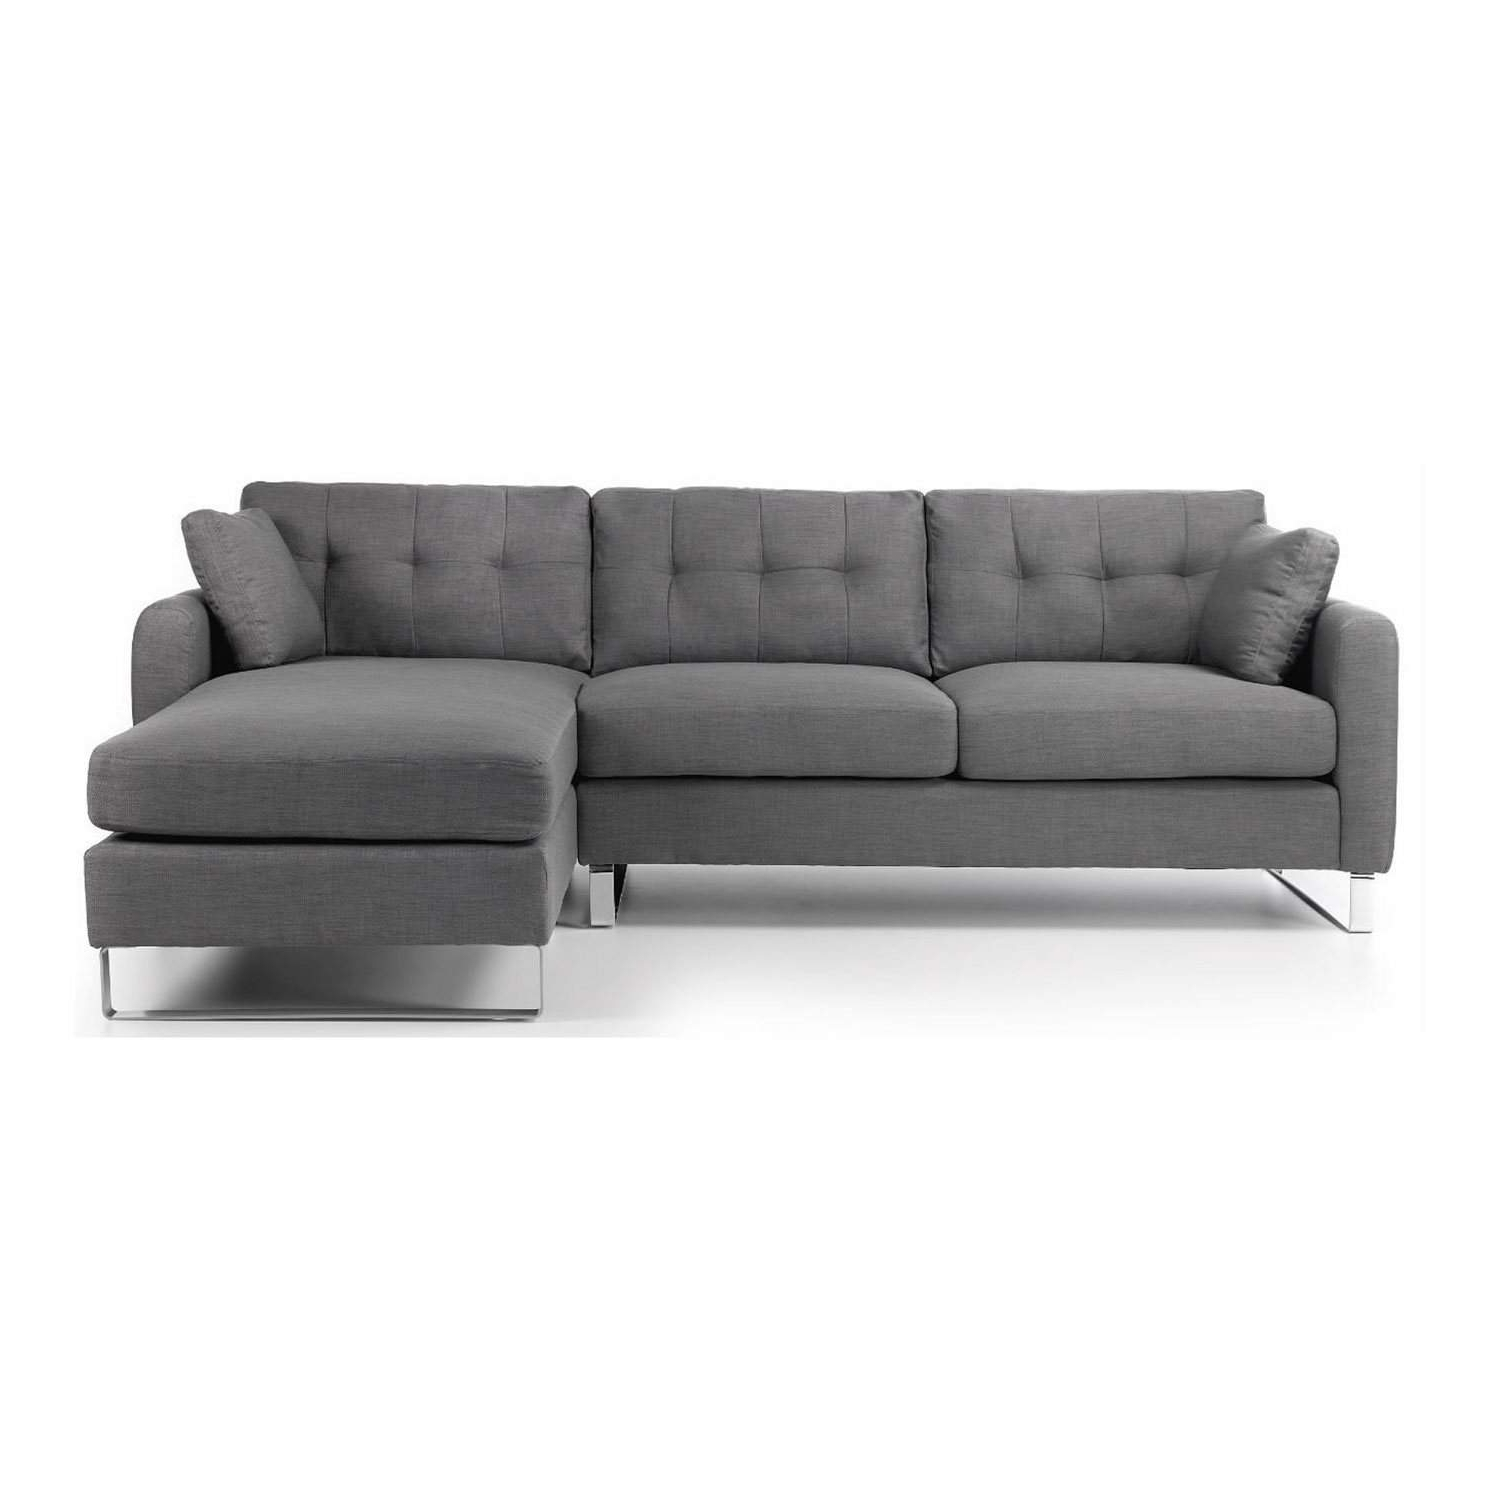 2018 Grey Chaise Sofas Intended For 37 Most Superb Grey Chaise Sofa Or Ekornes Stressless Plus Rustic (View 2 of 15)